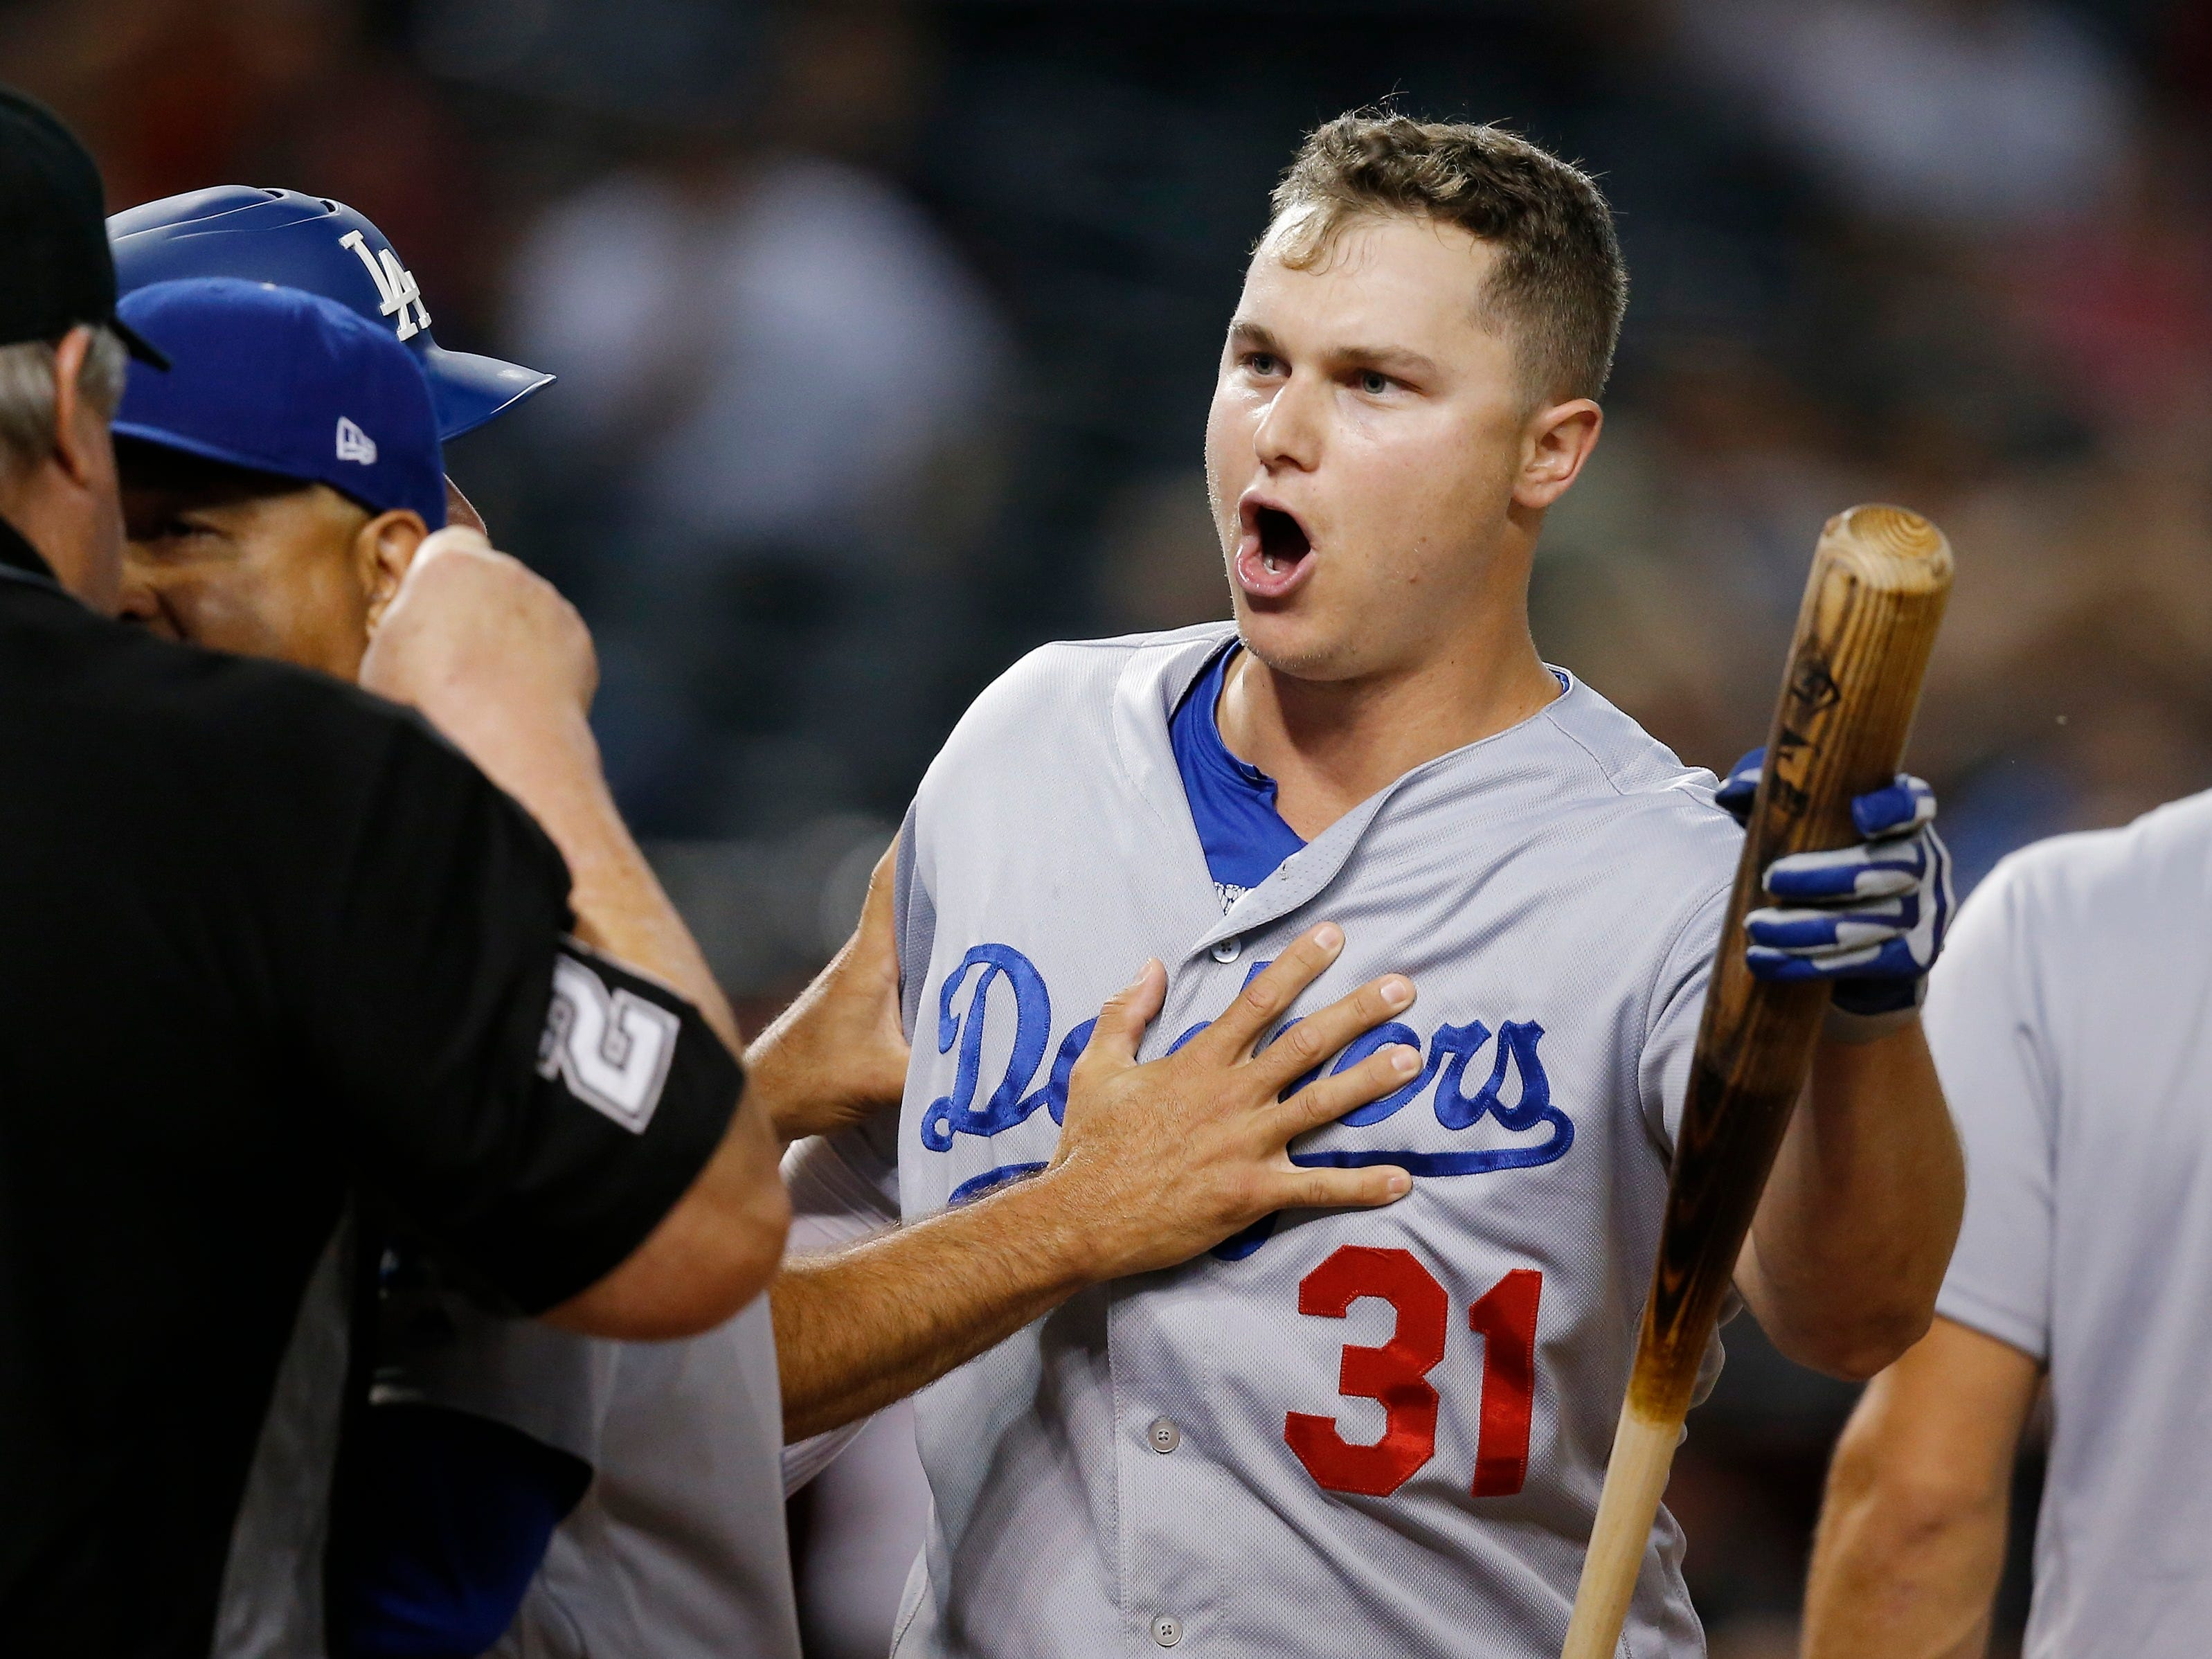 Los Angeles Dodgers' Joc Pederson (31) argues with umpire Joe West, left, after Pederson was thrown out during the ninth inning of a baseball game against the Arizona Diamondbacks, Monday, Sept. 24, 2018, in Phoenix. The Dodgers defeated the Diamondbacks 7-4. (AP Photo/Ross D. Franklin)